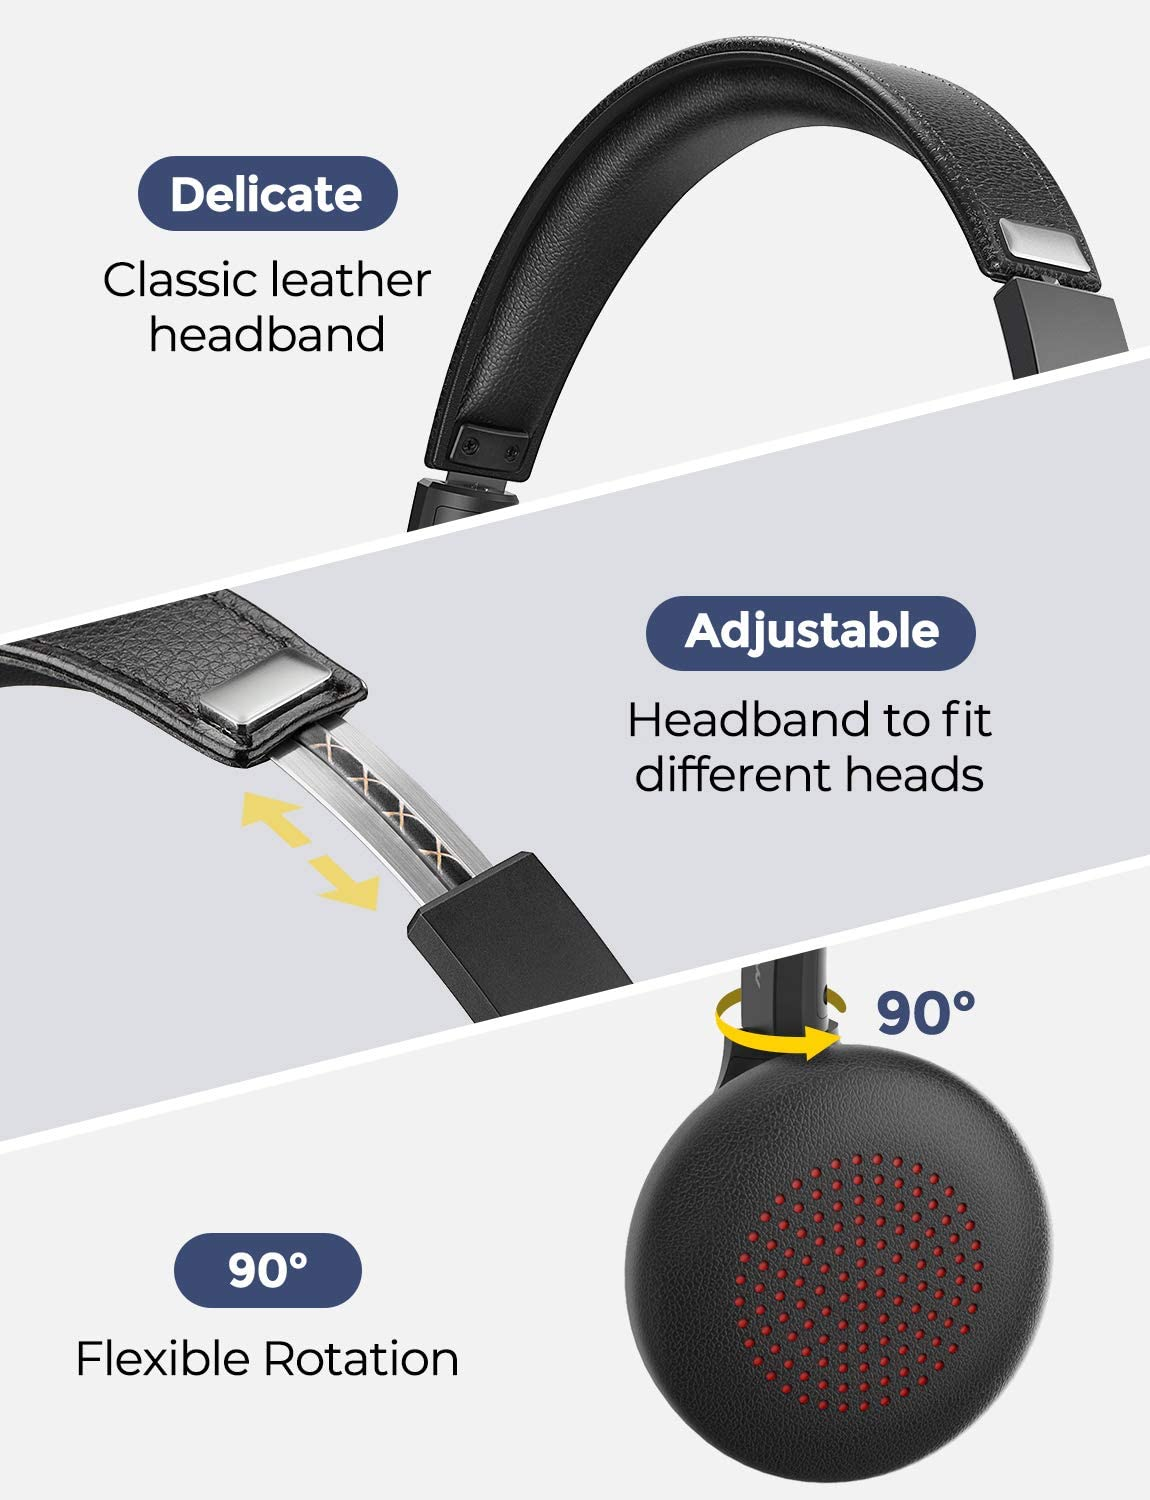 Mpow Bluetooth Headset V5.0 with Dual Microphone, Wireless PC Headphones,CVC8.0 Noise Canceling, On Ear for Computer,Cell Phone, Call Center, Office, Skype, 22 H Talk Time,Soft Earpad(Wired Optional): Electronics